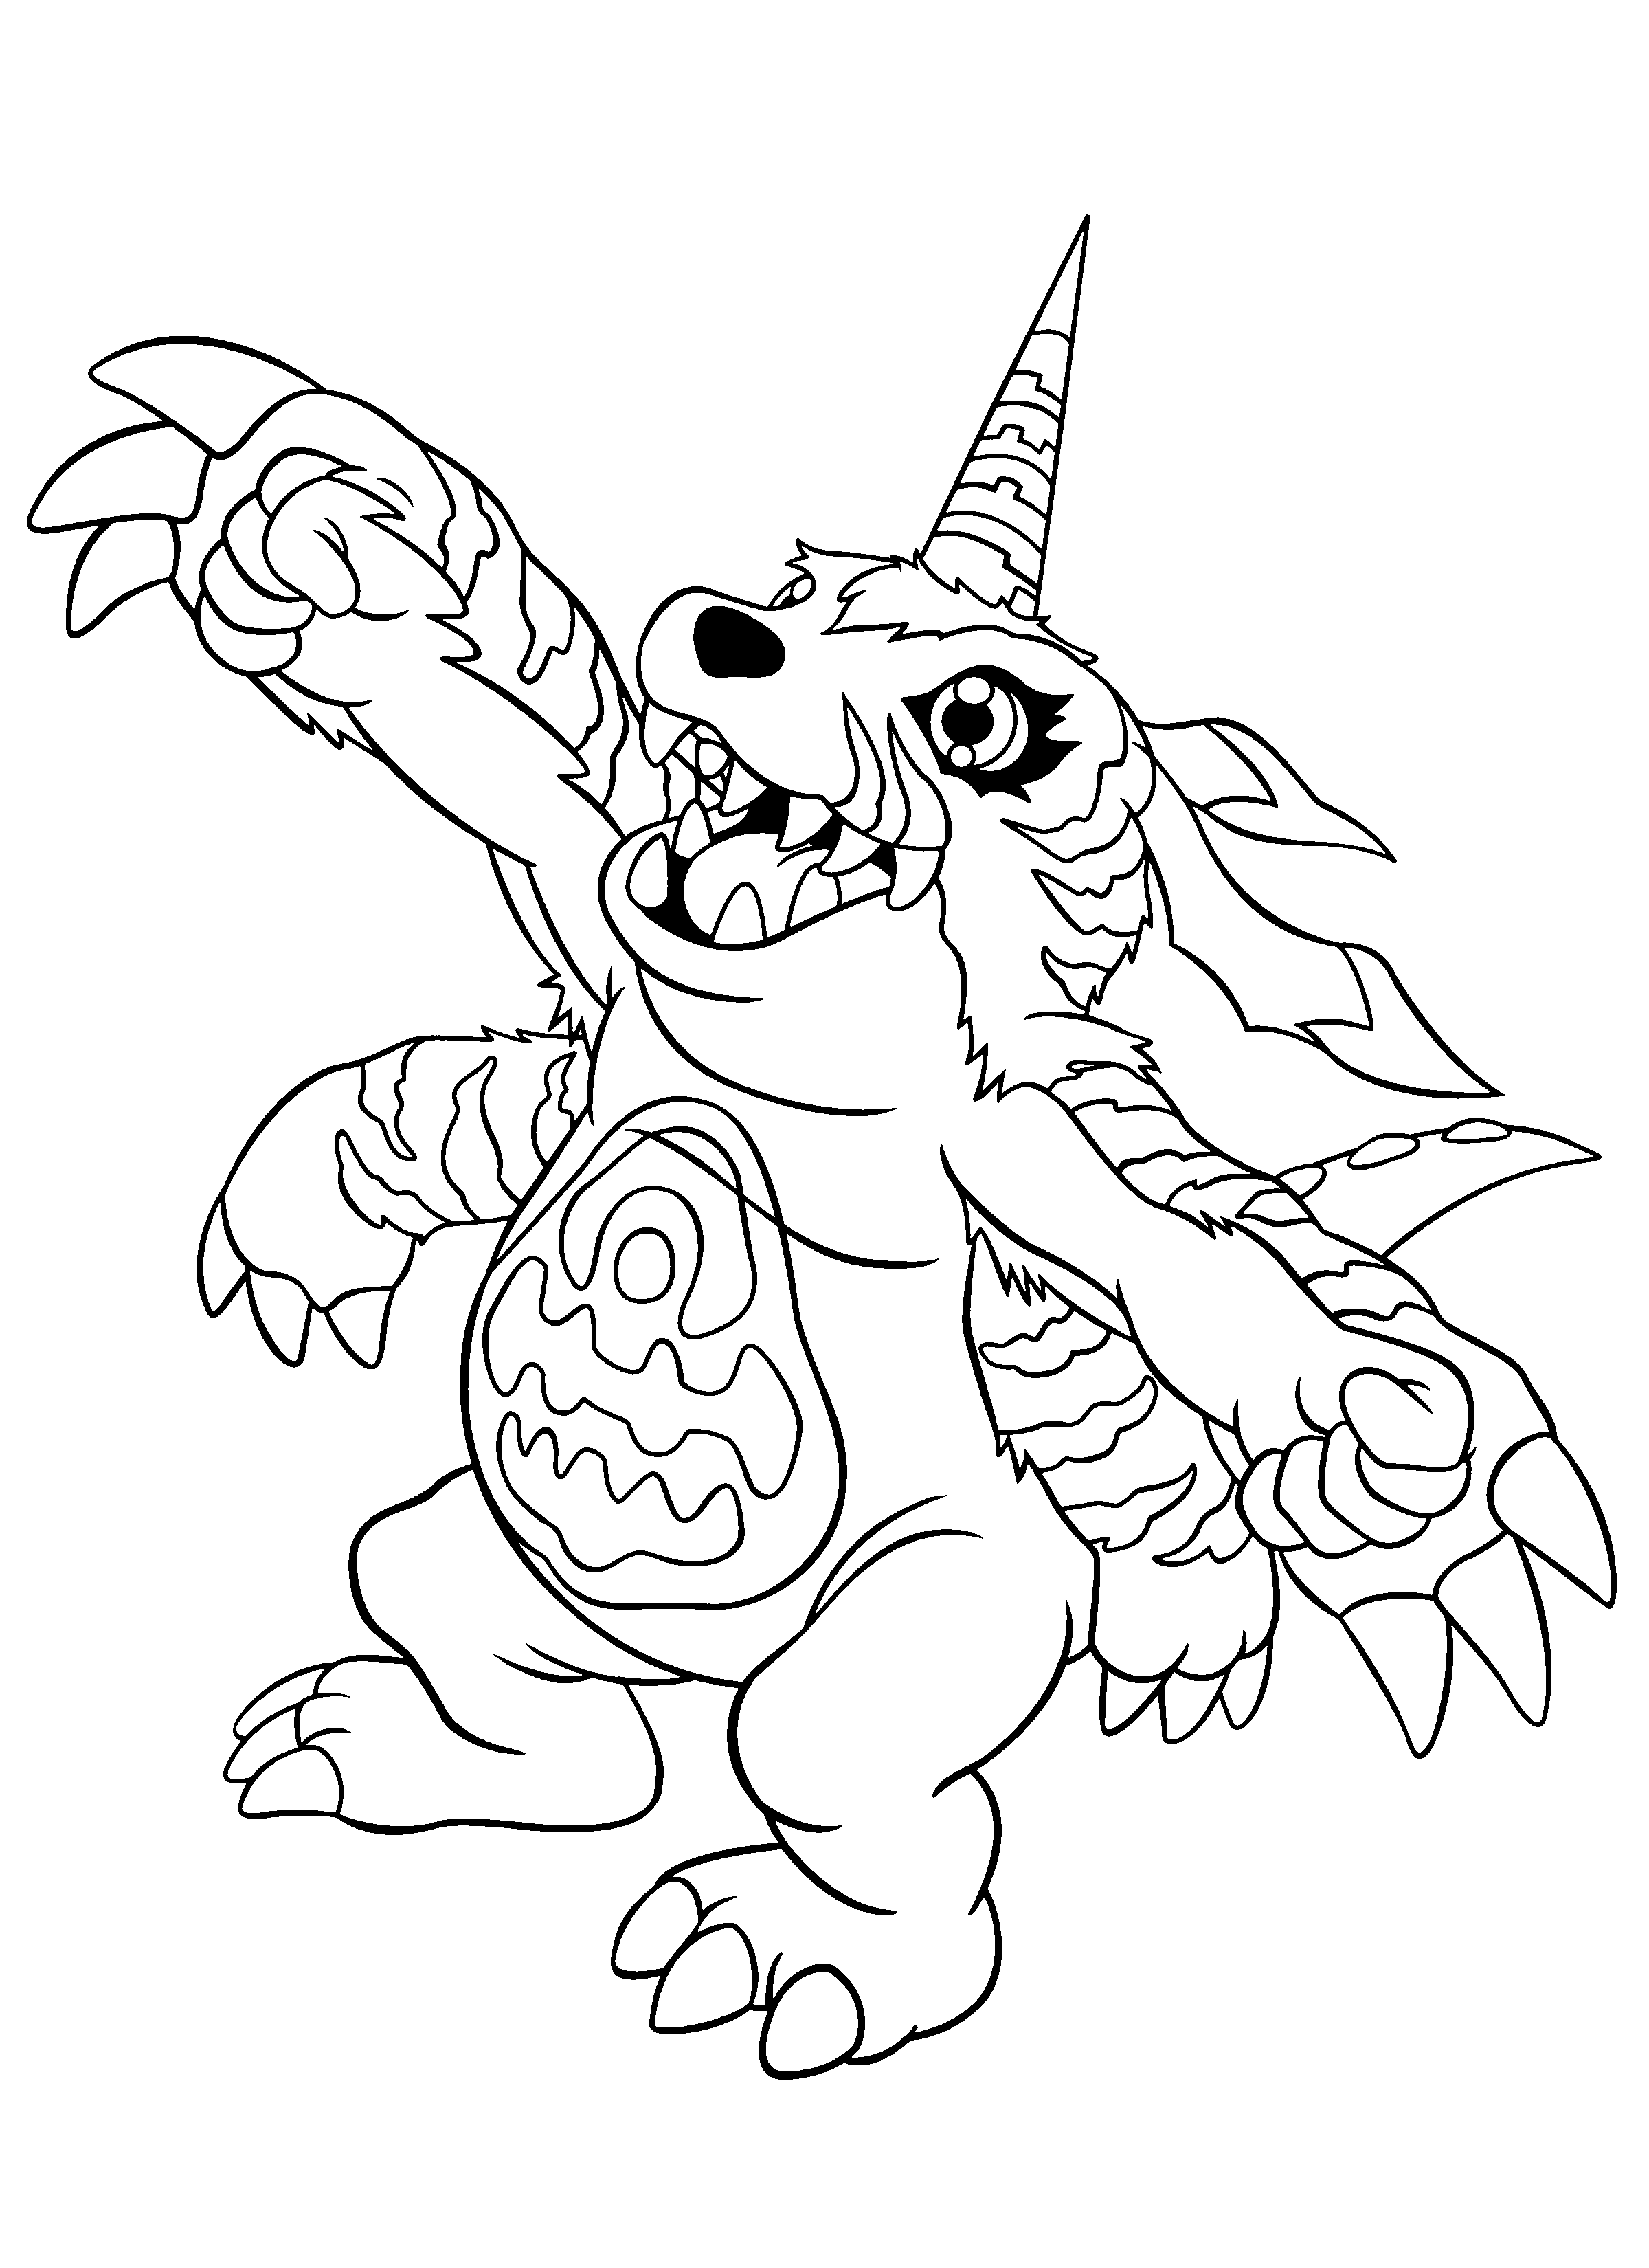 Coloring Page Digimon Coloring Pages 215 Cute Coloring Pages Coloring Pages Digimon Tattoo